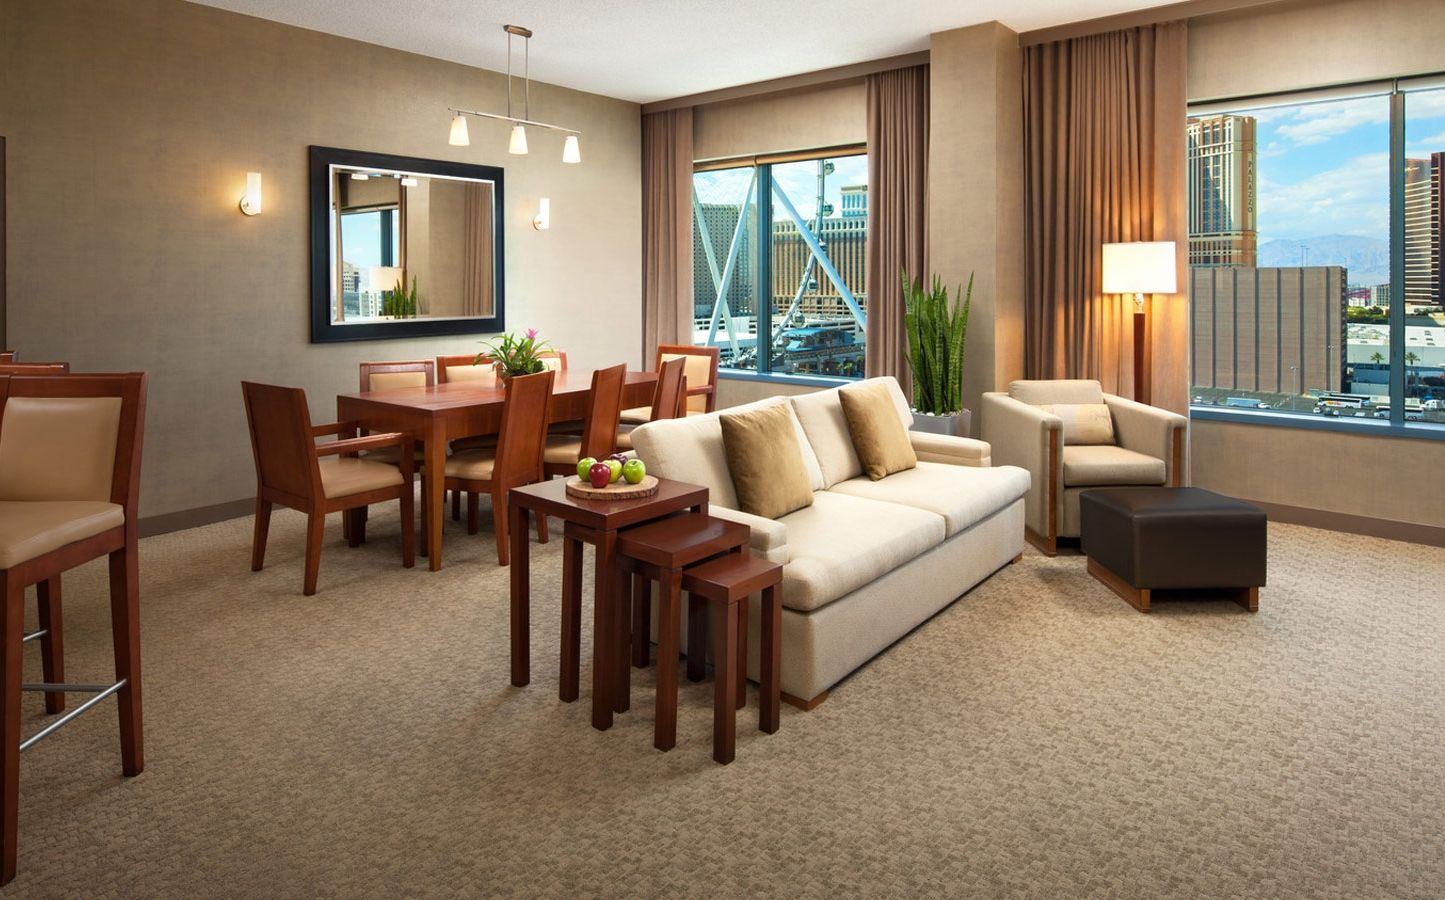 las vegas hotels with two bedroom suites